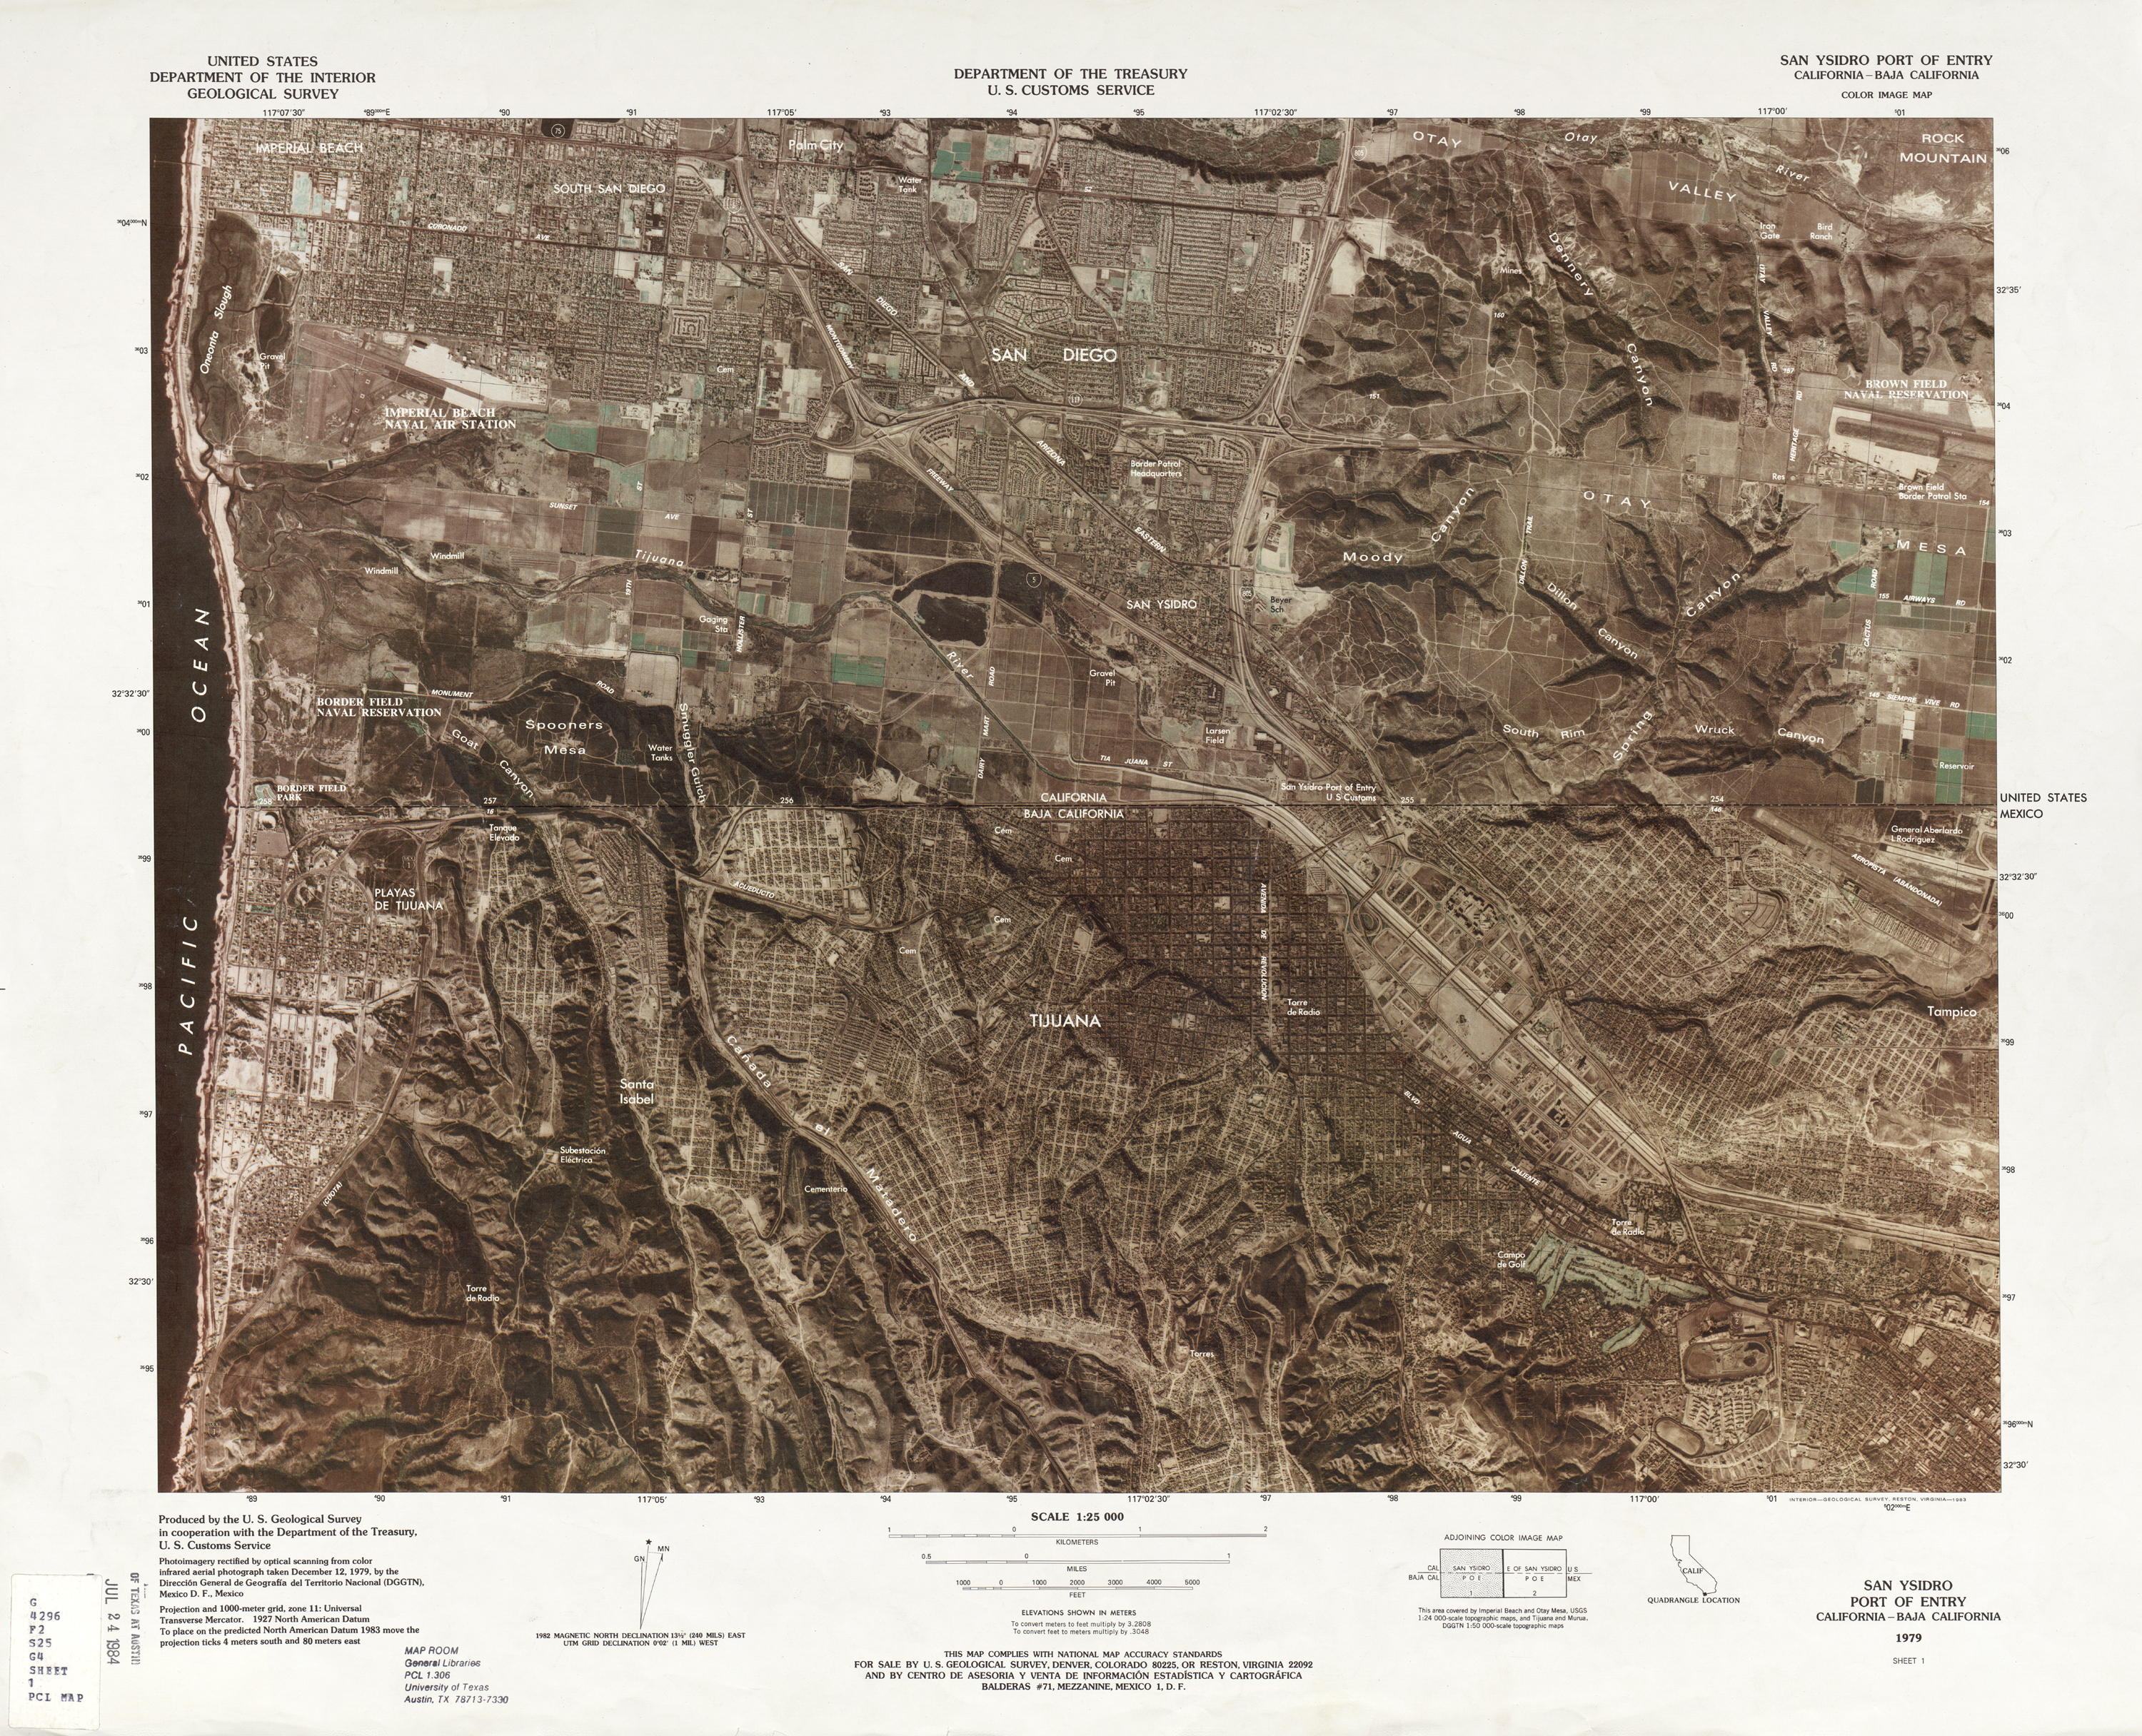 Mexico United States Border PerryCastañeda Map Collection UT - Us map ststes route 80